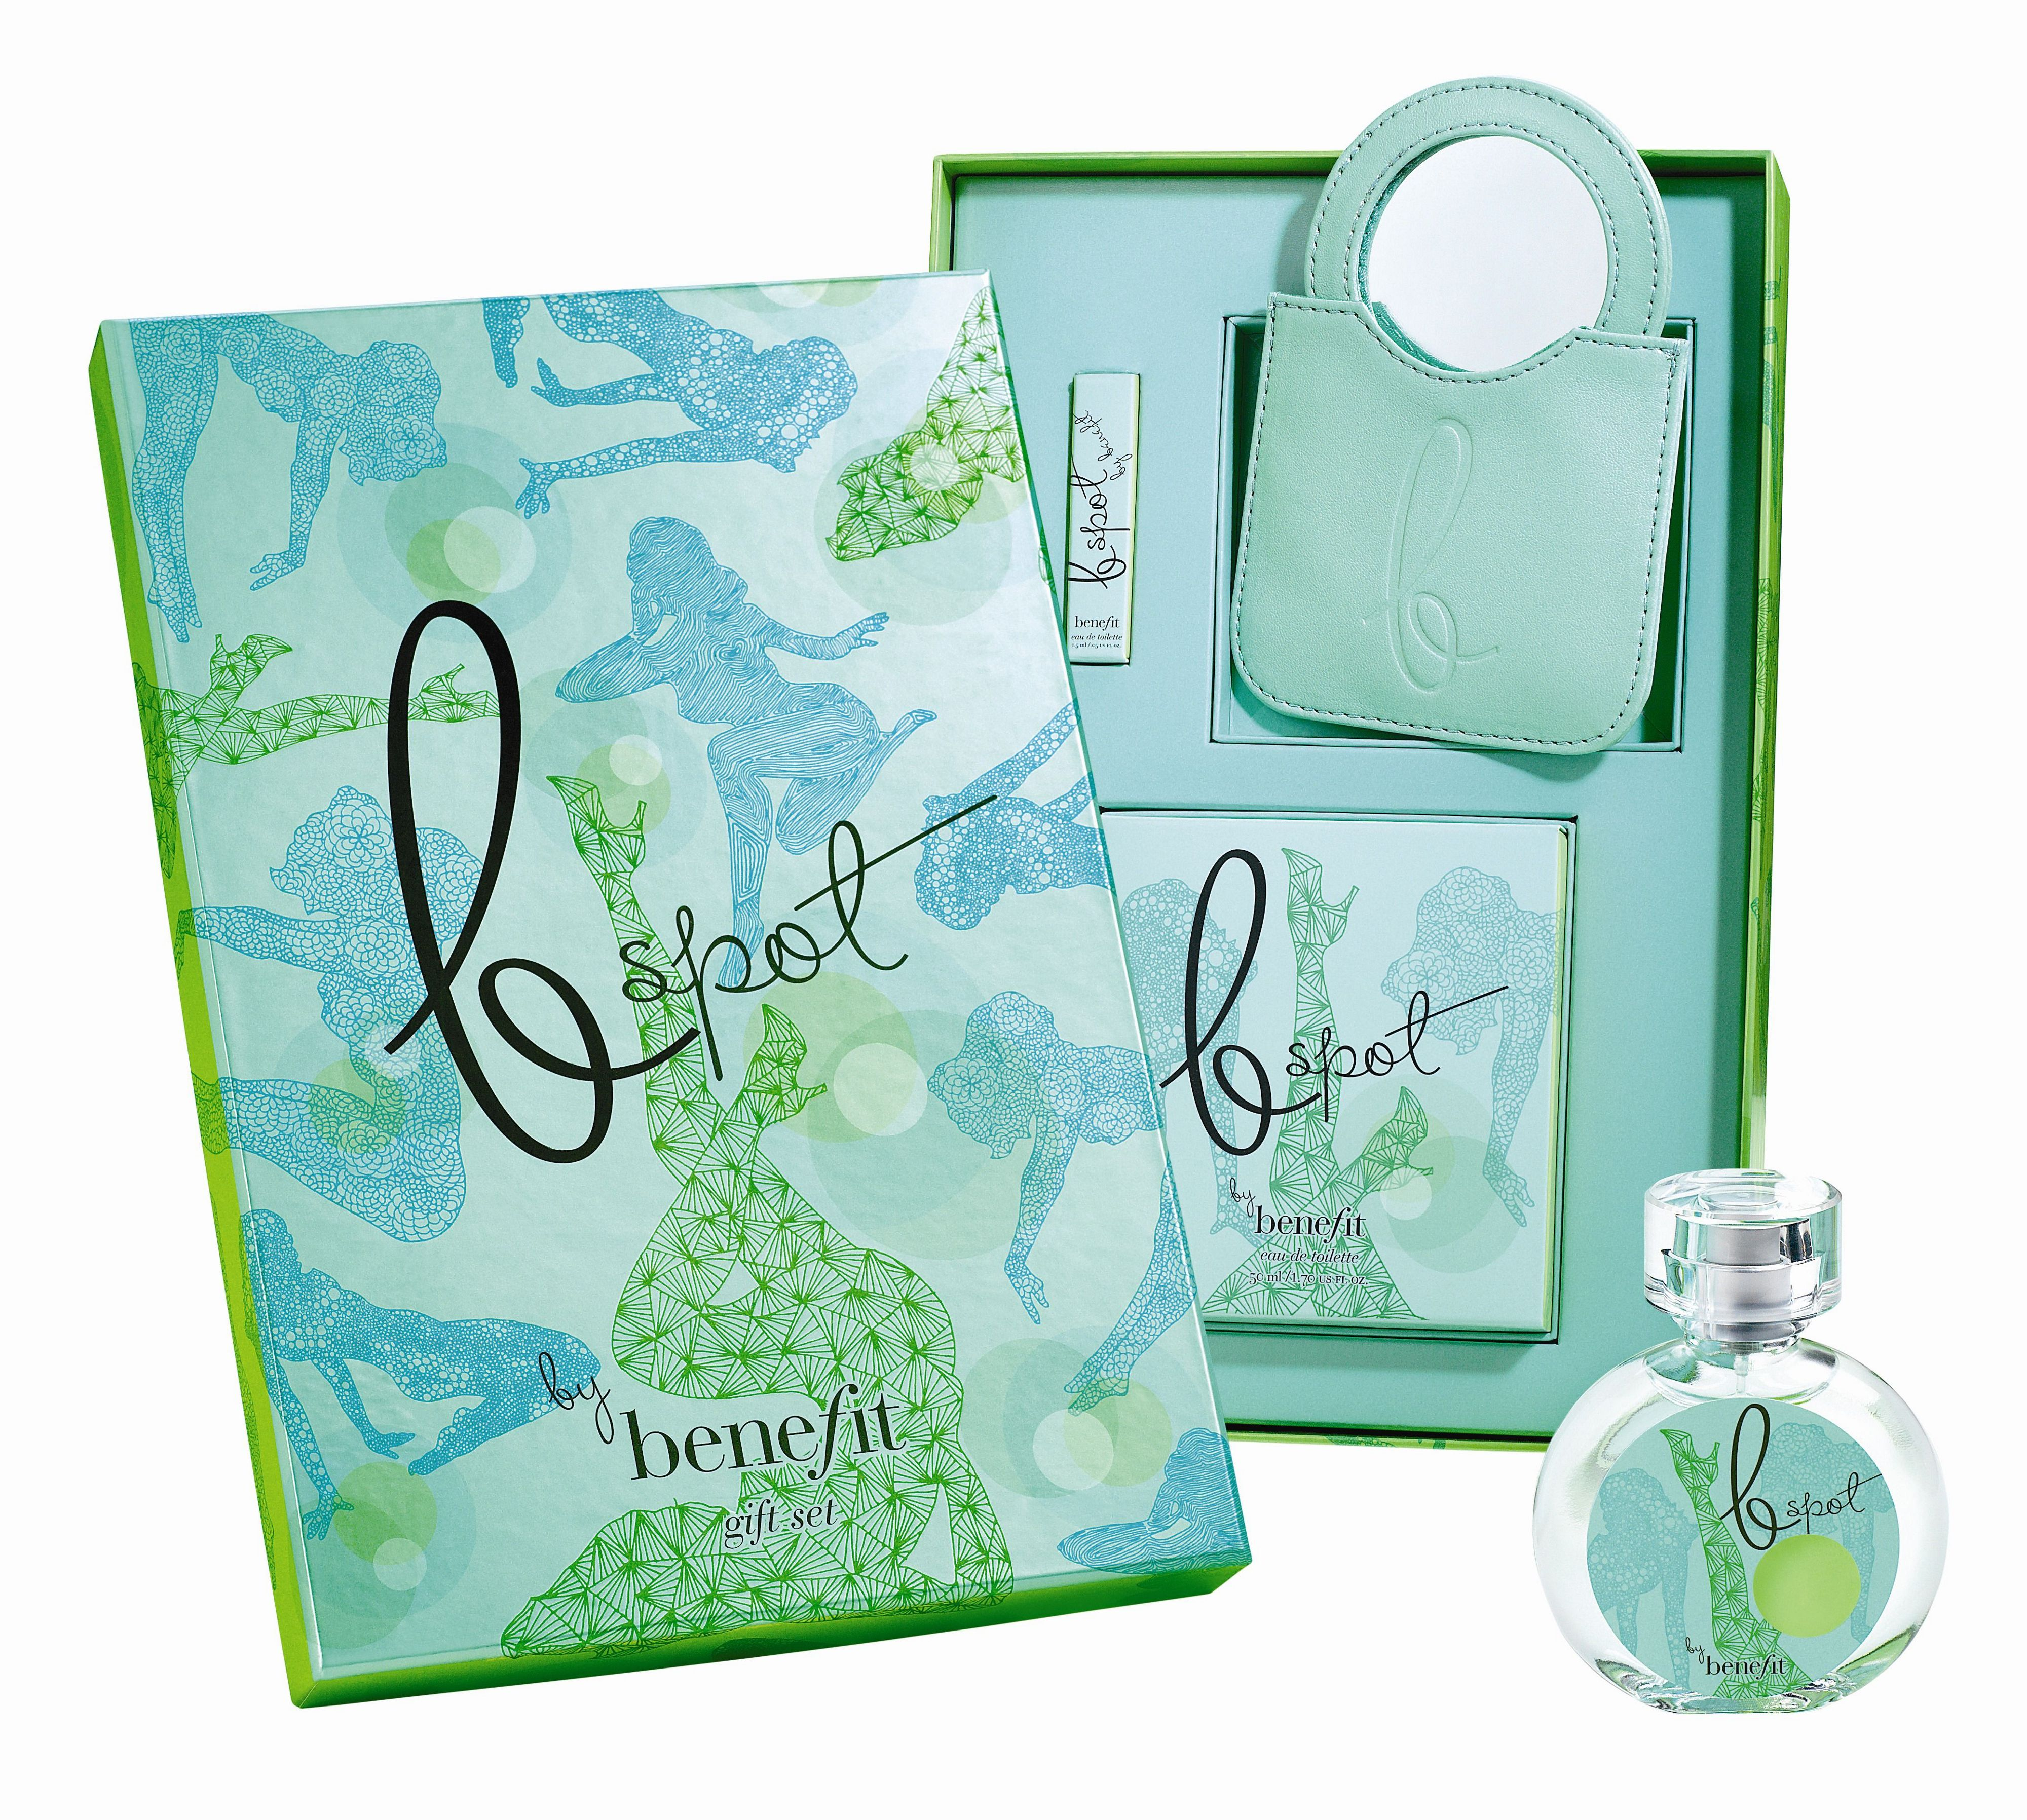 Benefit B spot set - CLICK FOR MORE INFORMATION